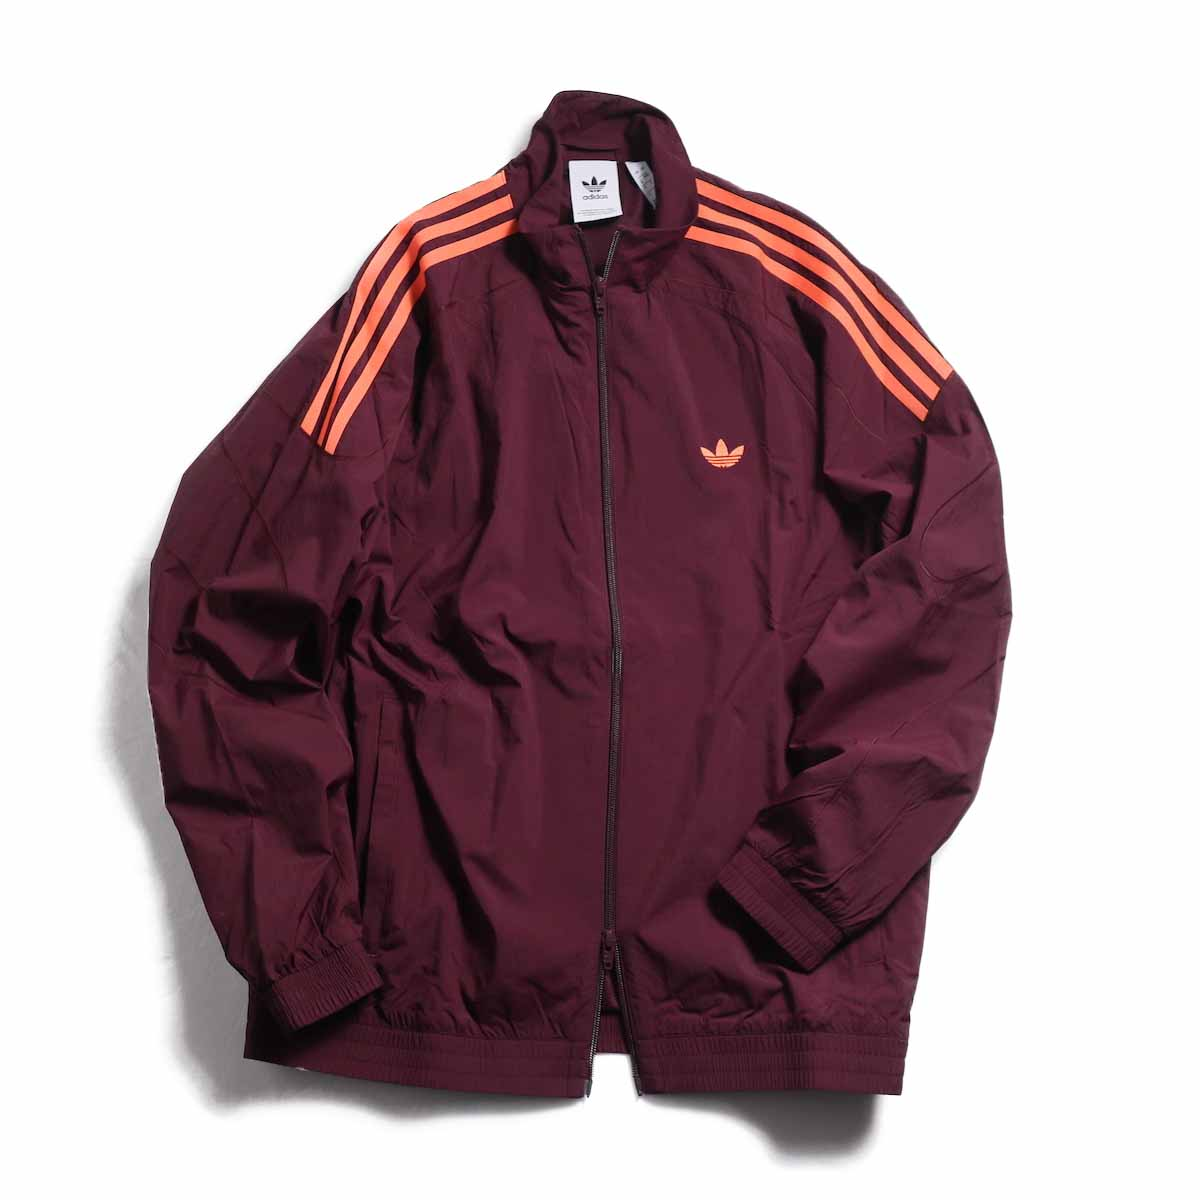 adidas originals / Flamestrike Woven Track Top -Maroon